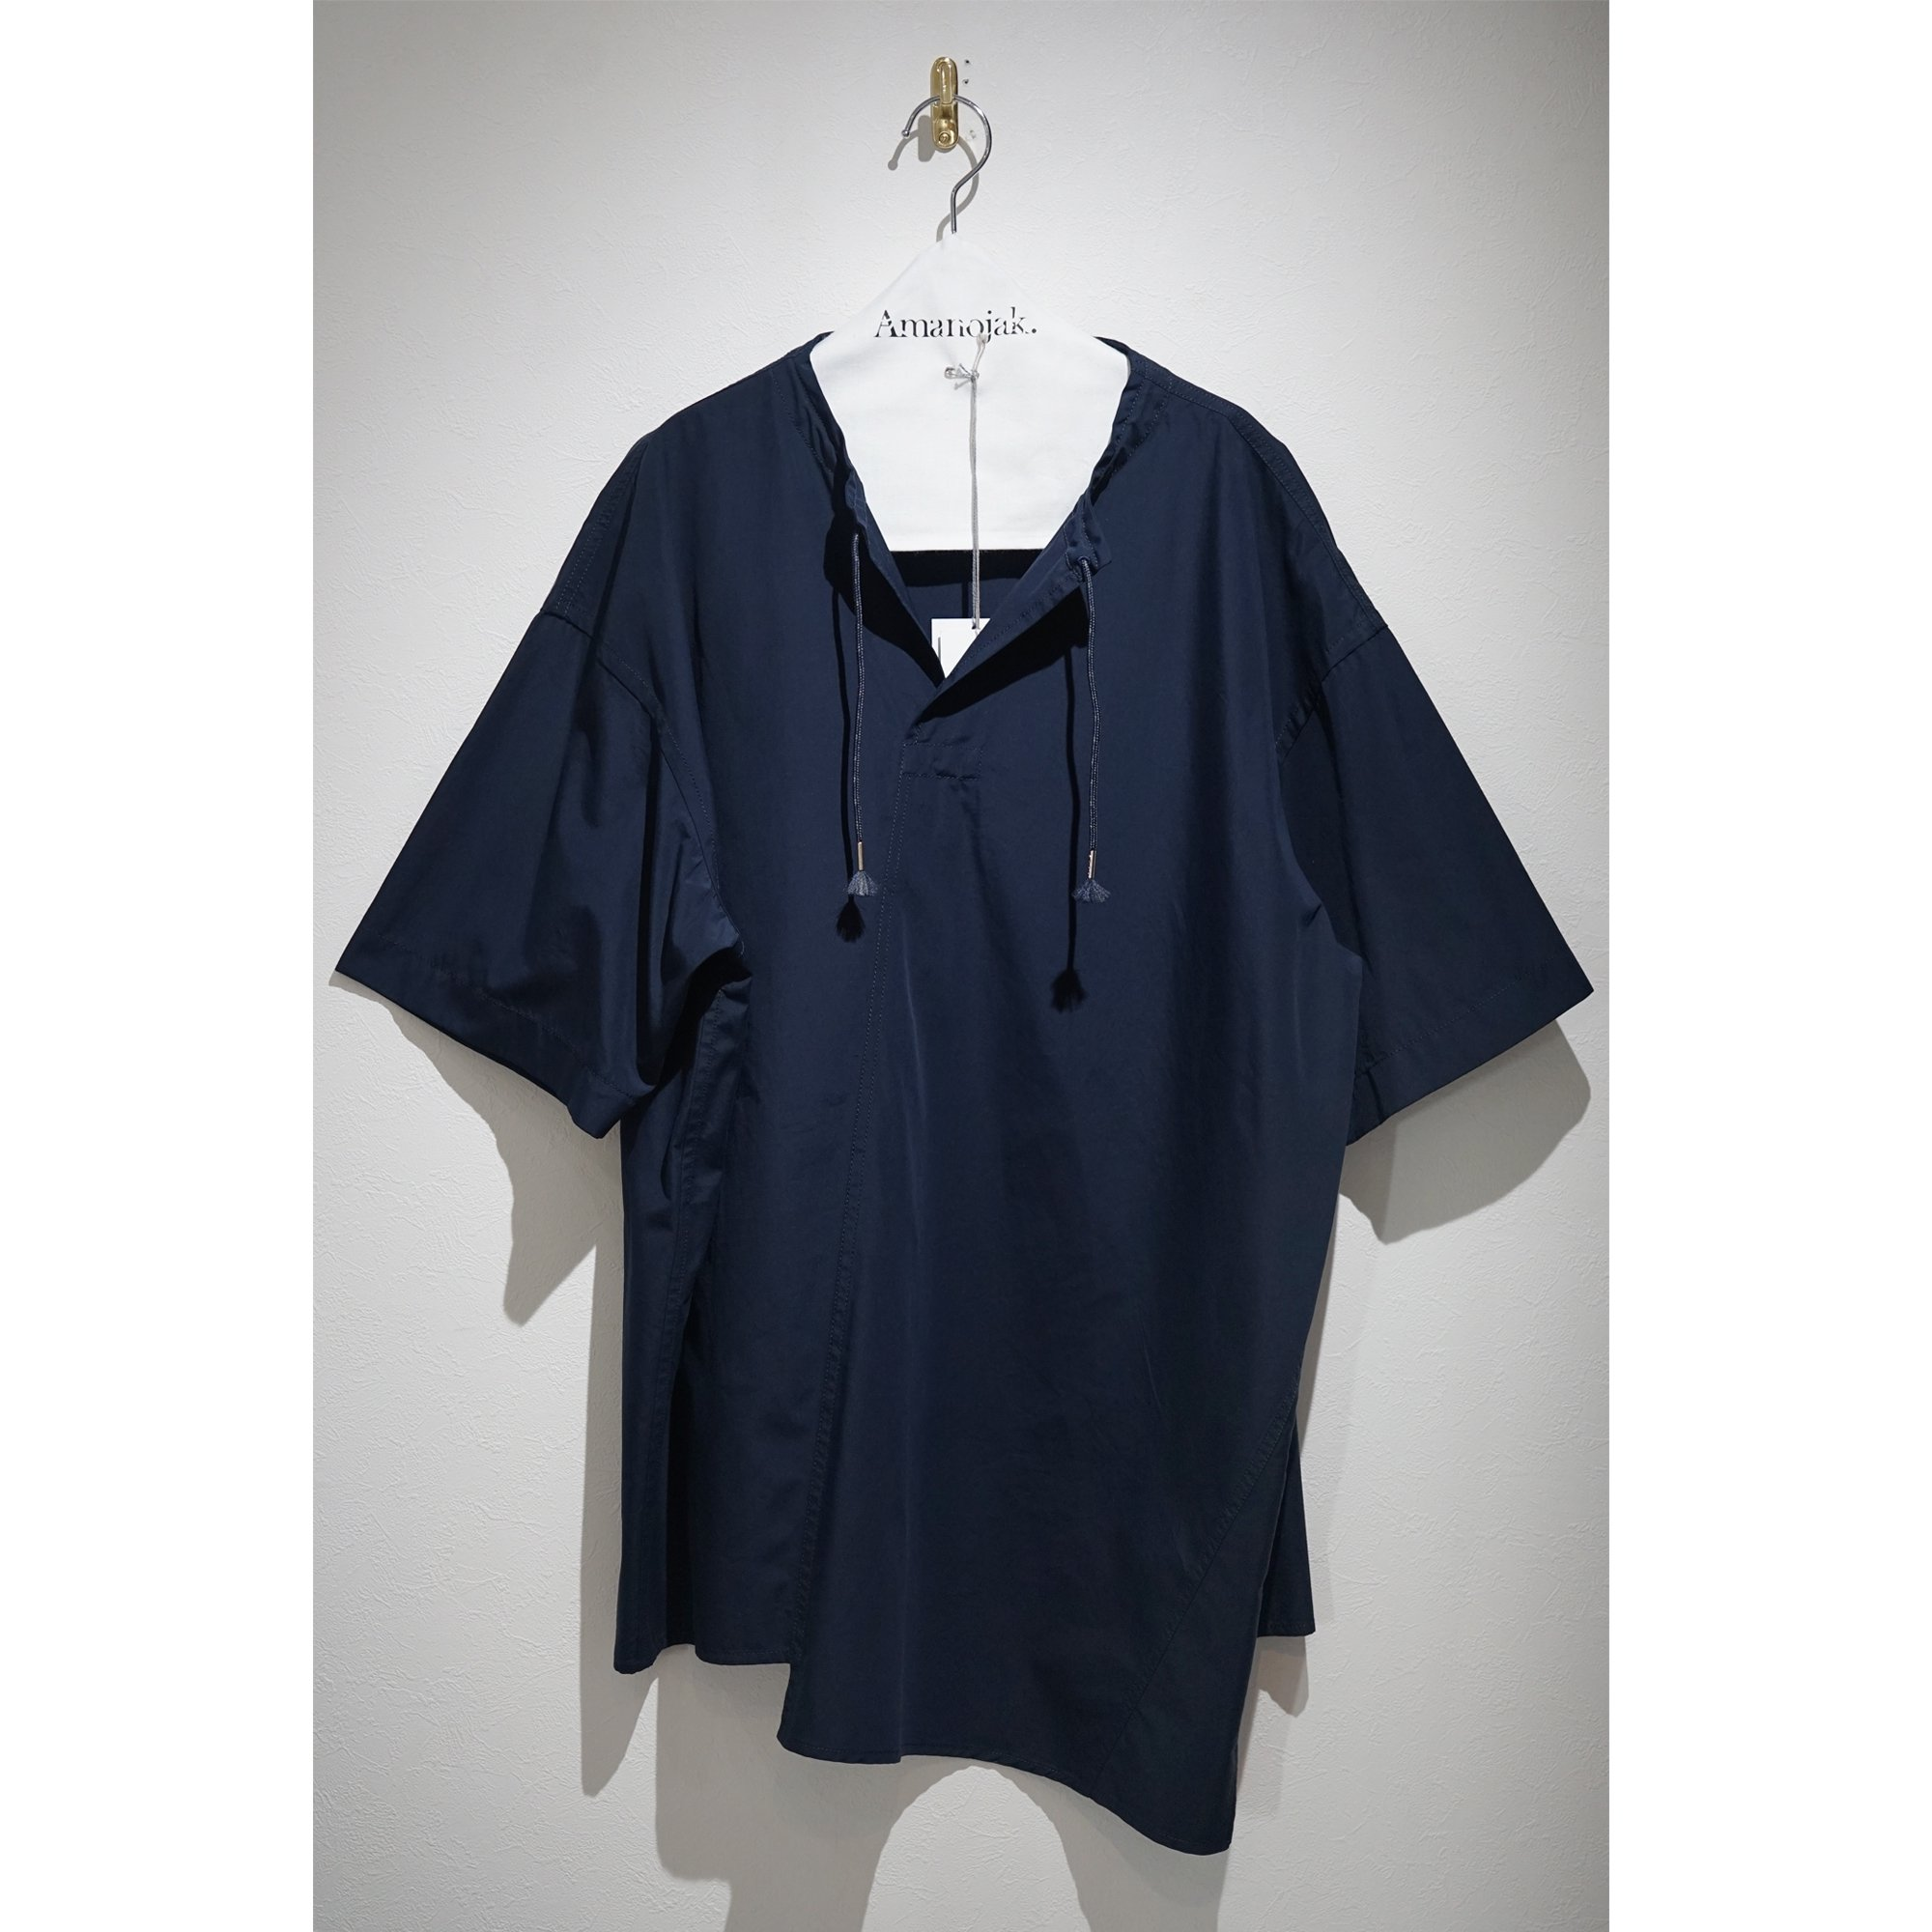 MARNI-STRING SKIPPER SHORT SLEEVE SHIRTS BLU NAVY<br>(在庫あり)